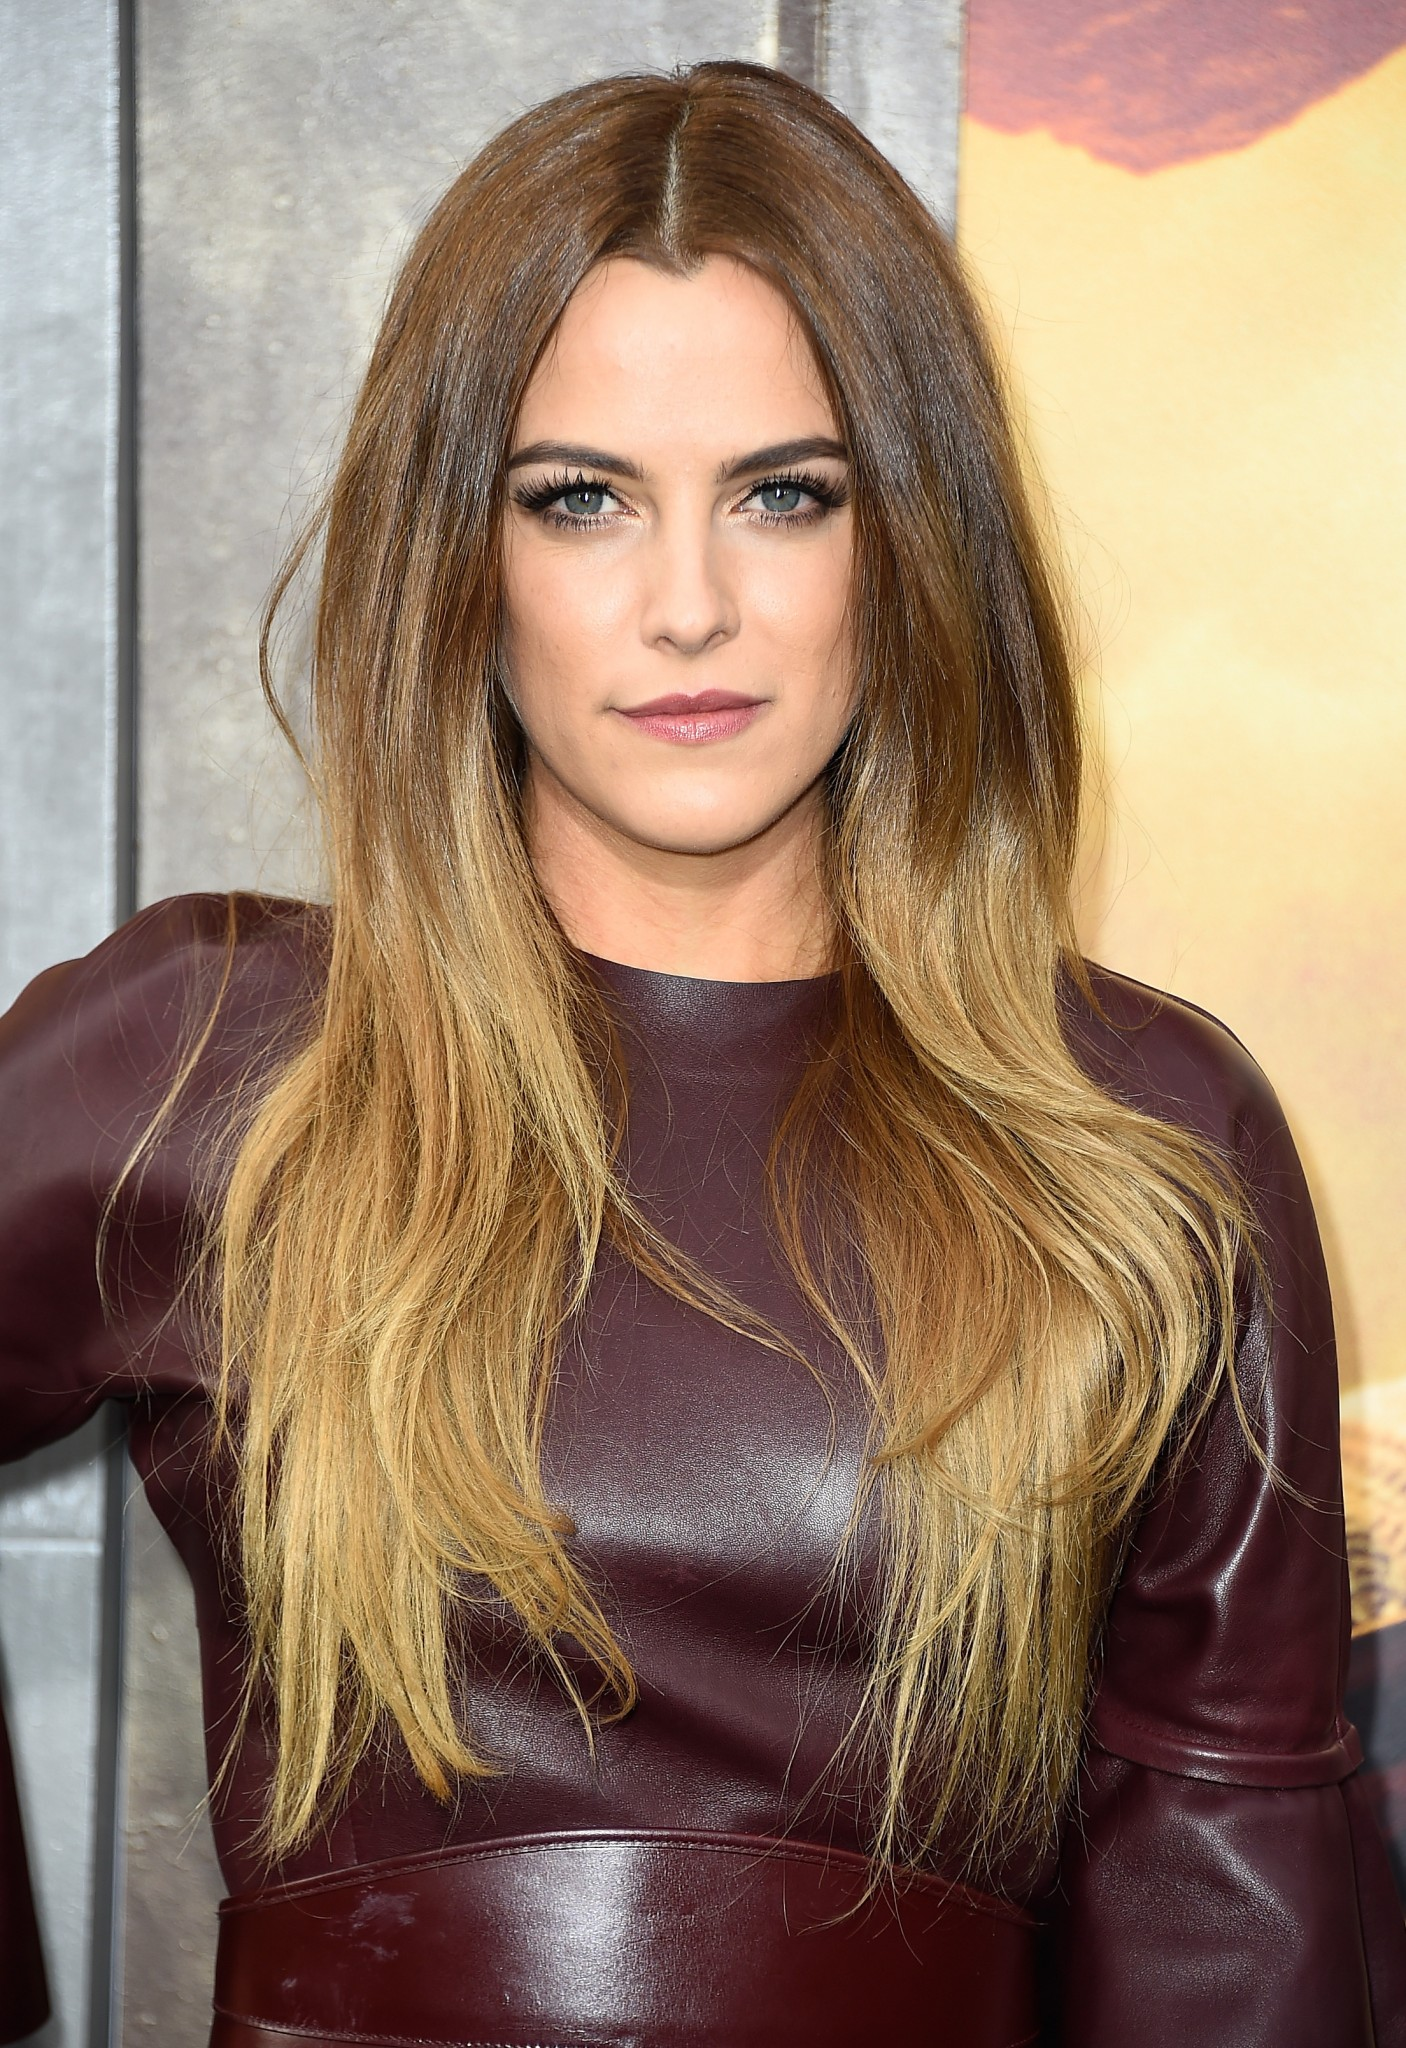 Riley Keough at the Mad Max: Fury Road premiere